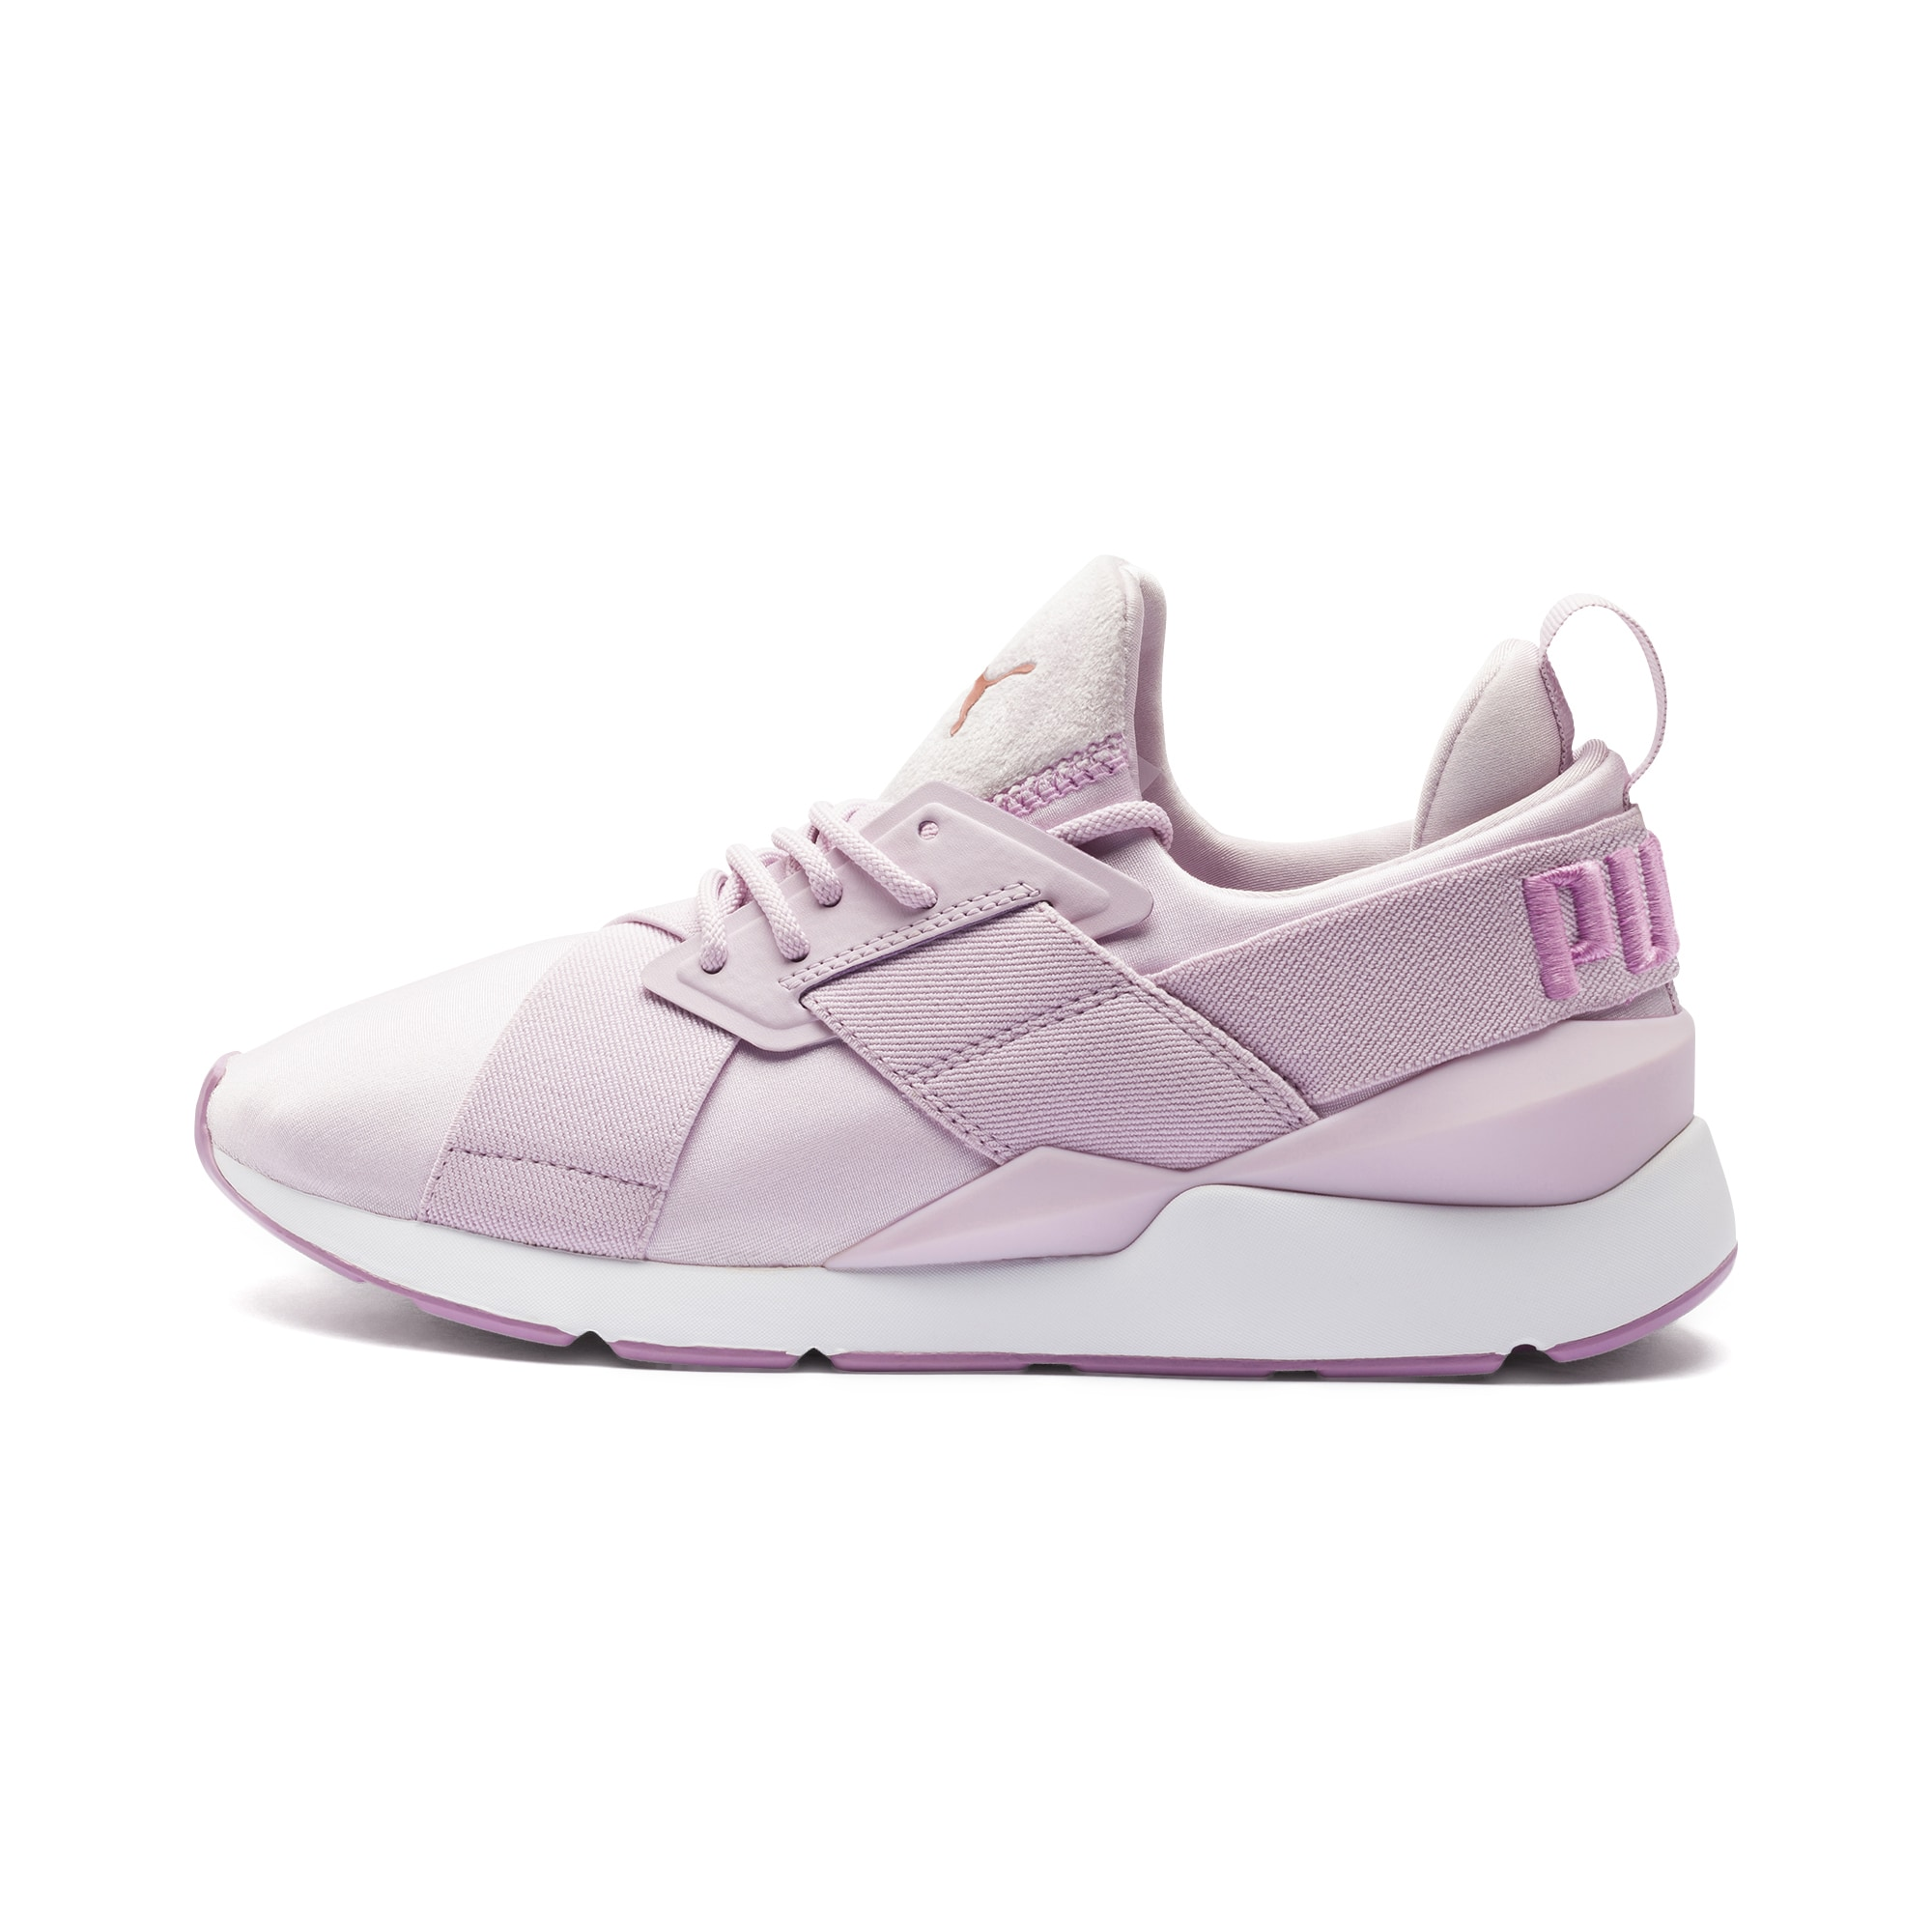 PUMA, Dames Sneakers laag 'MUSE Satin II Wns', sering